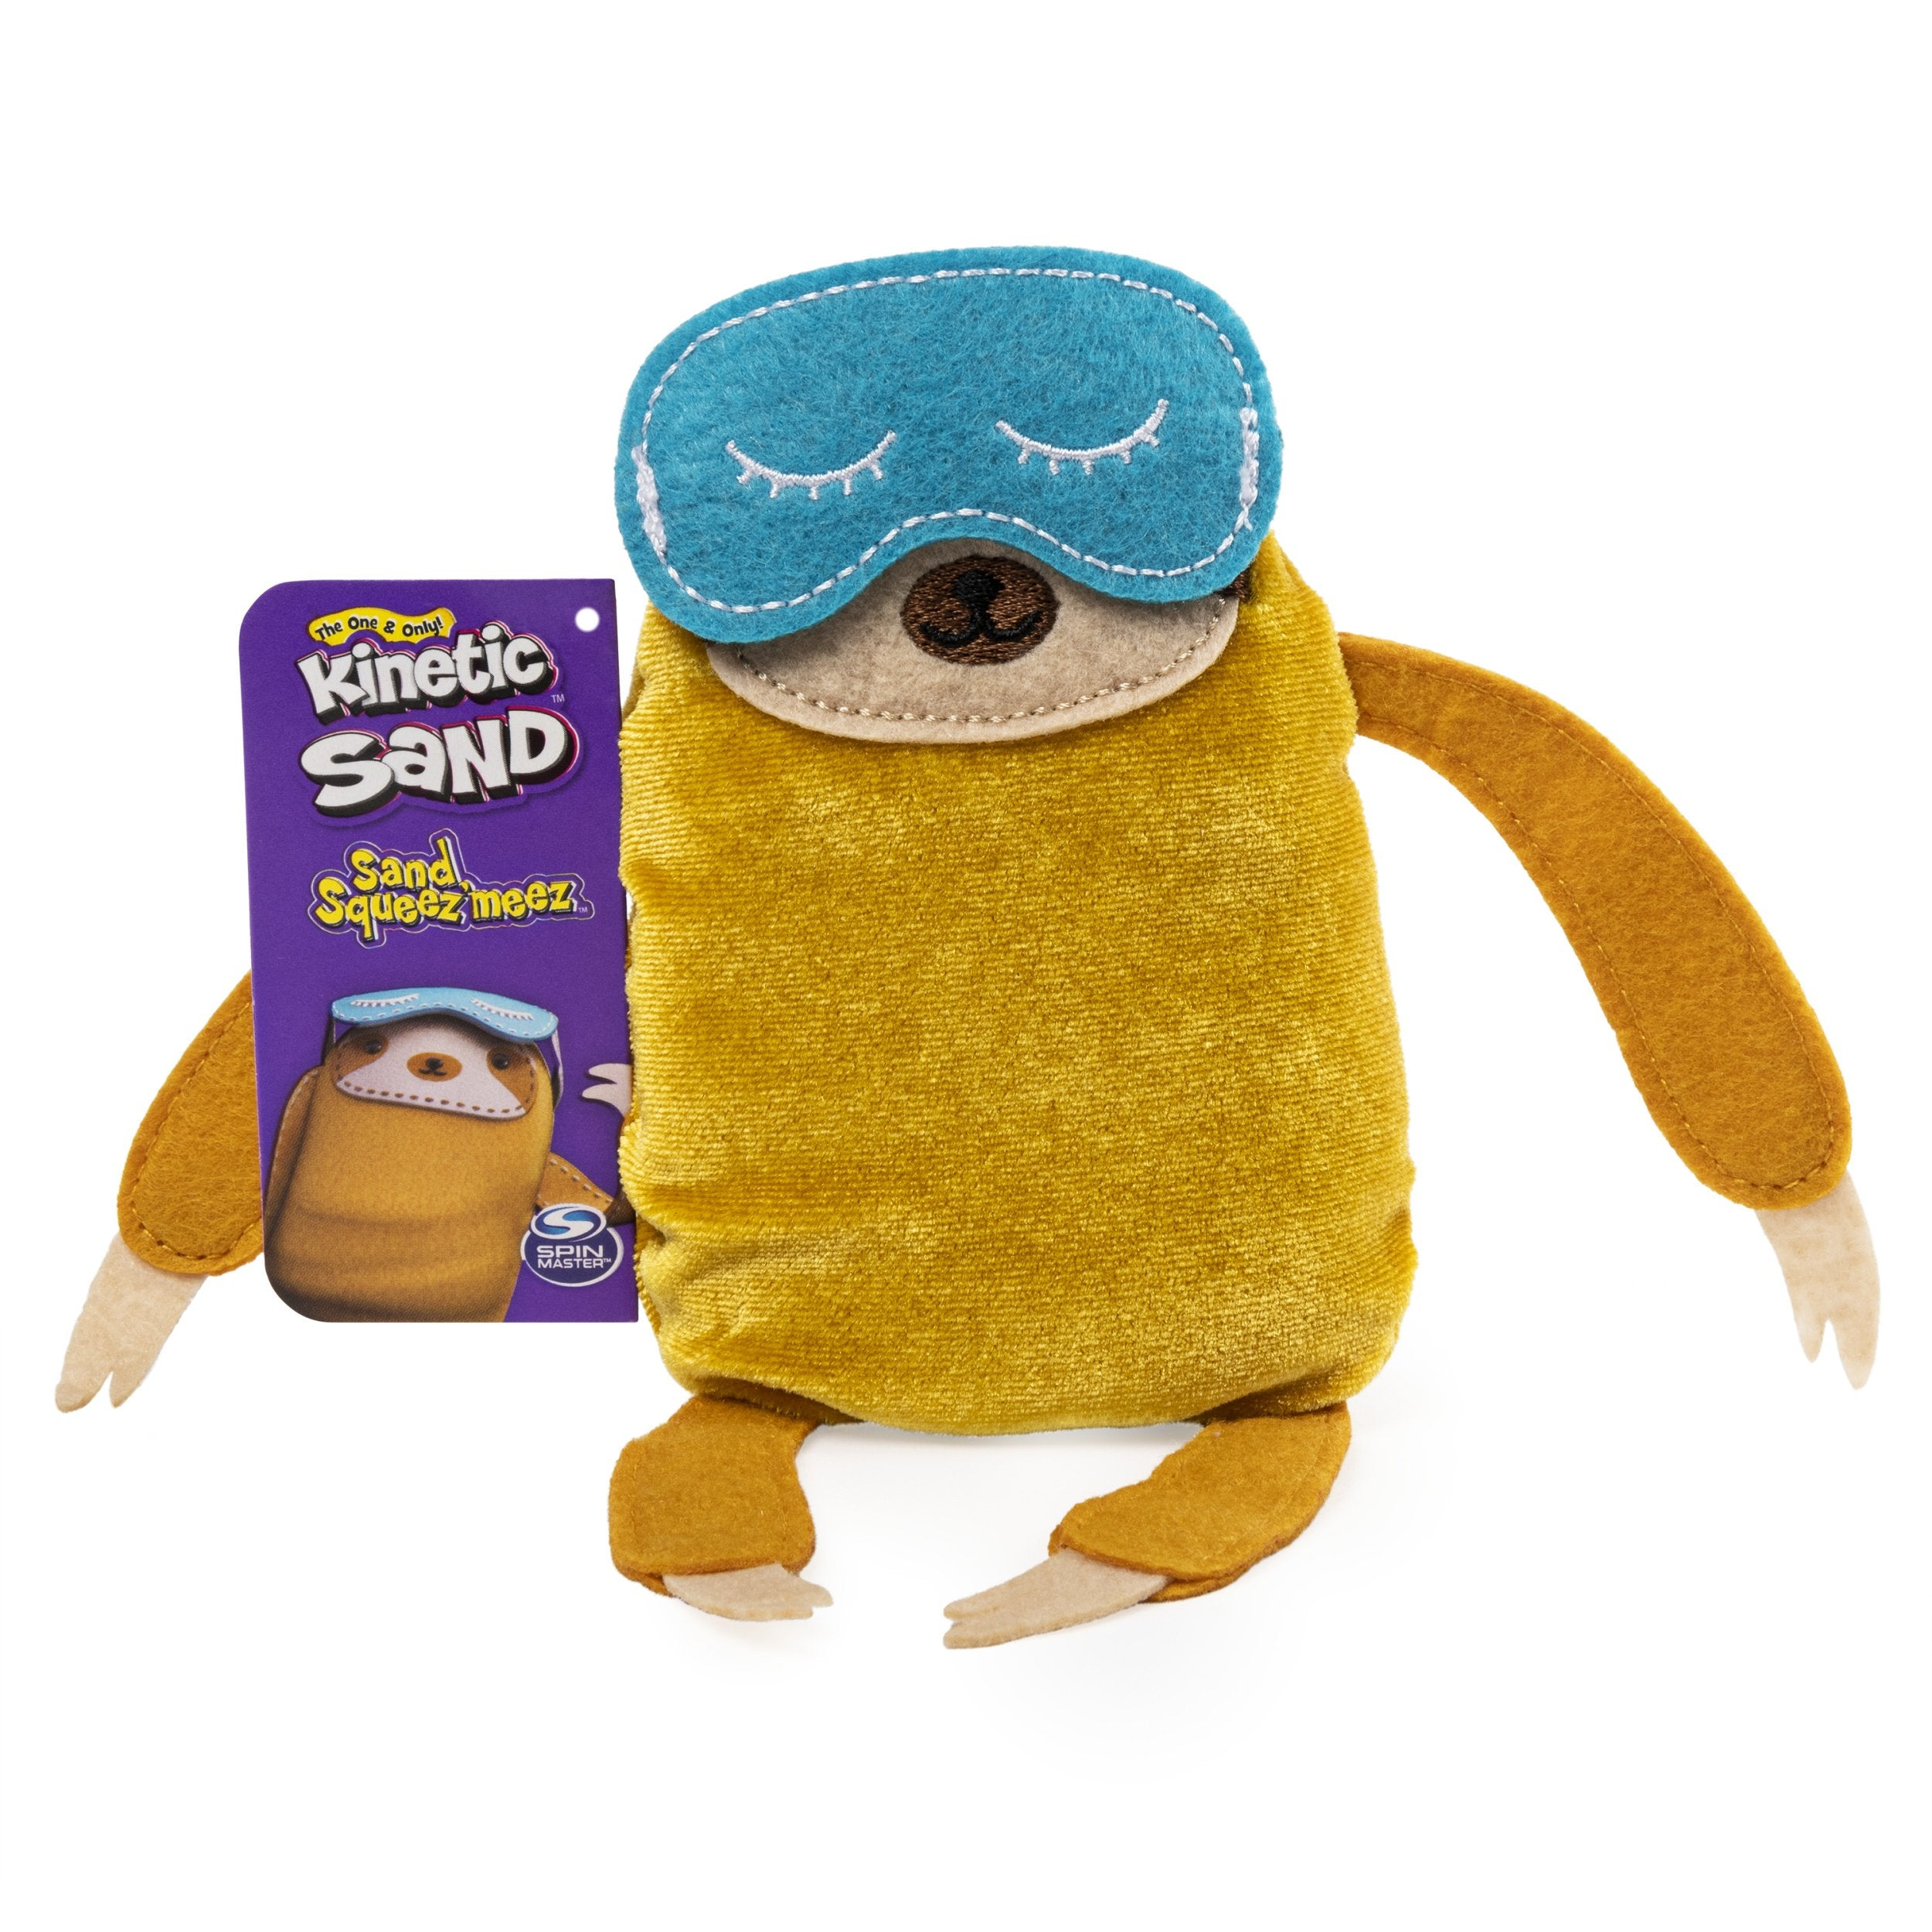 Sand Filled Stuffed Animals, Sloth Squeez Meez Kinetic Sand Official Site